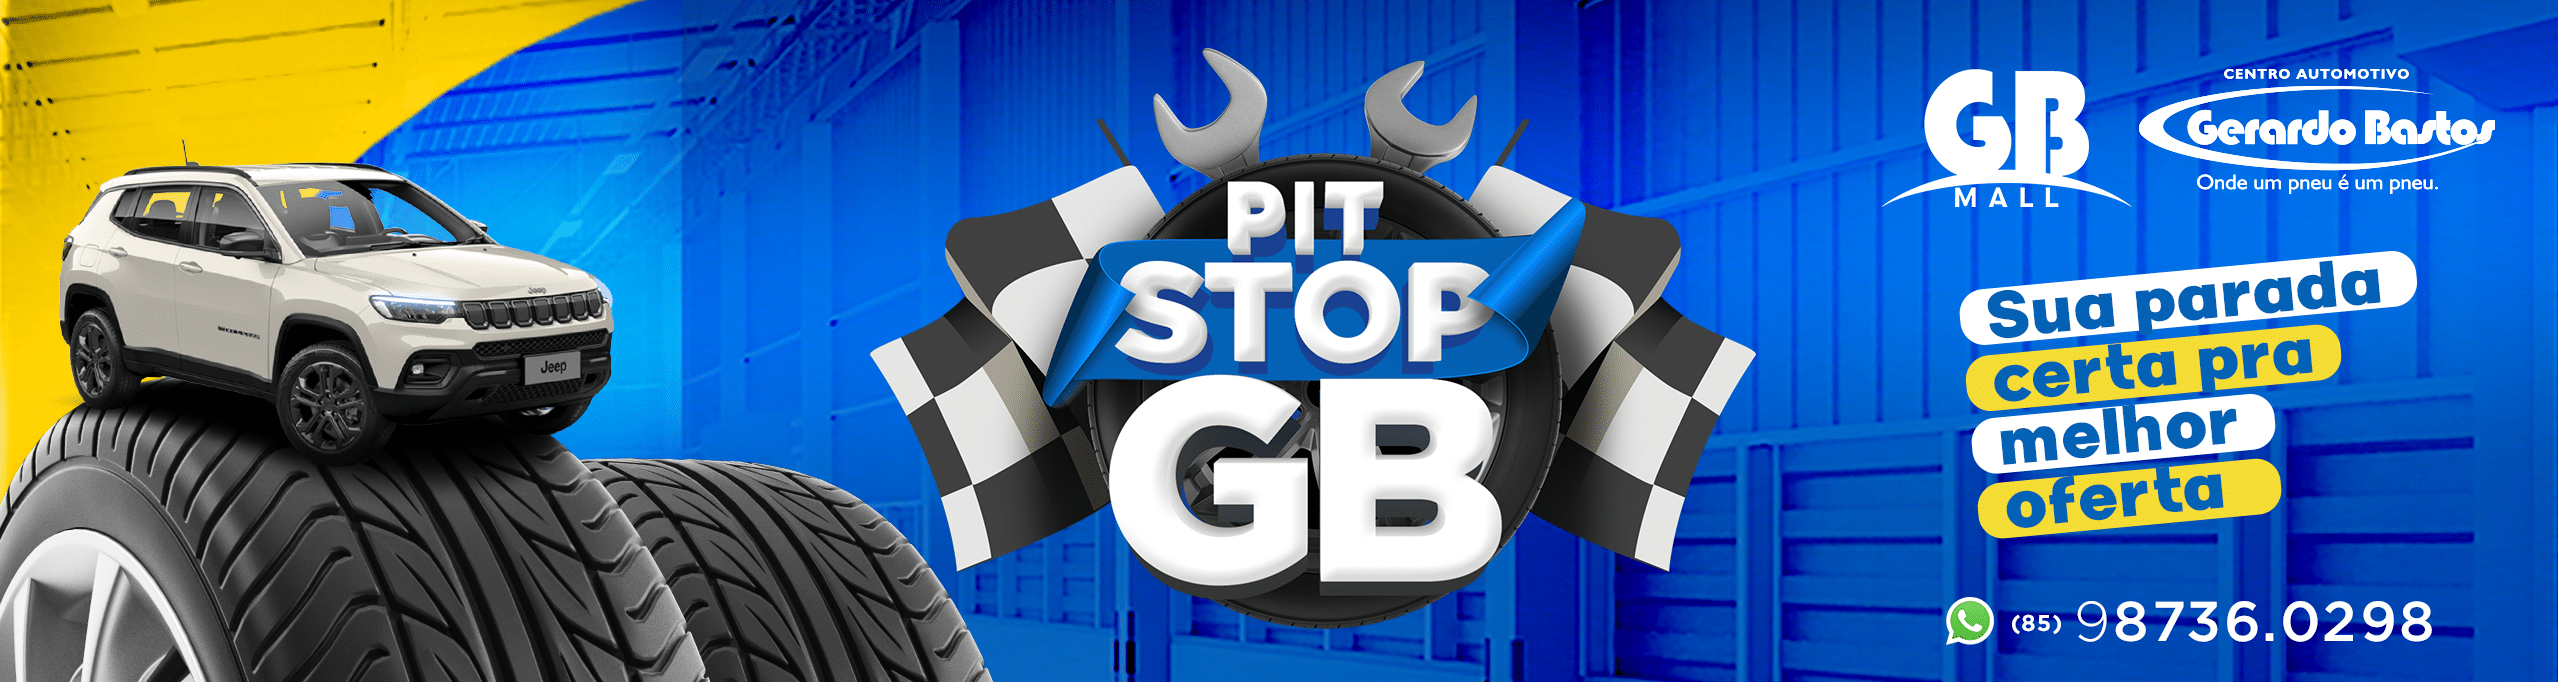 Pit Stop GB banner 2558 x 682